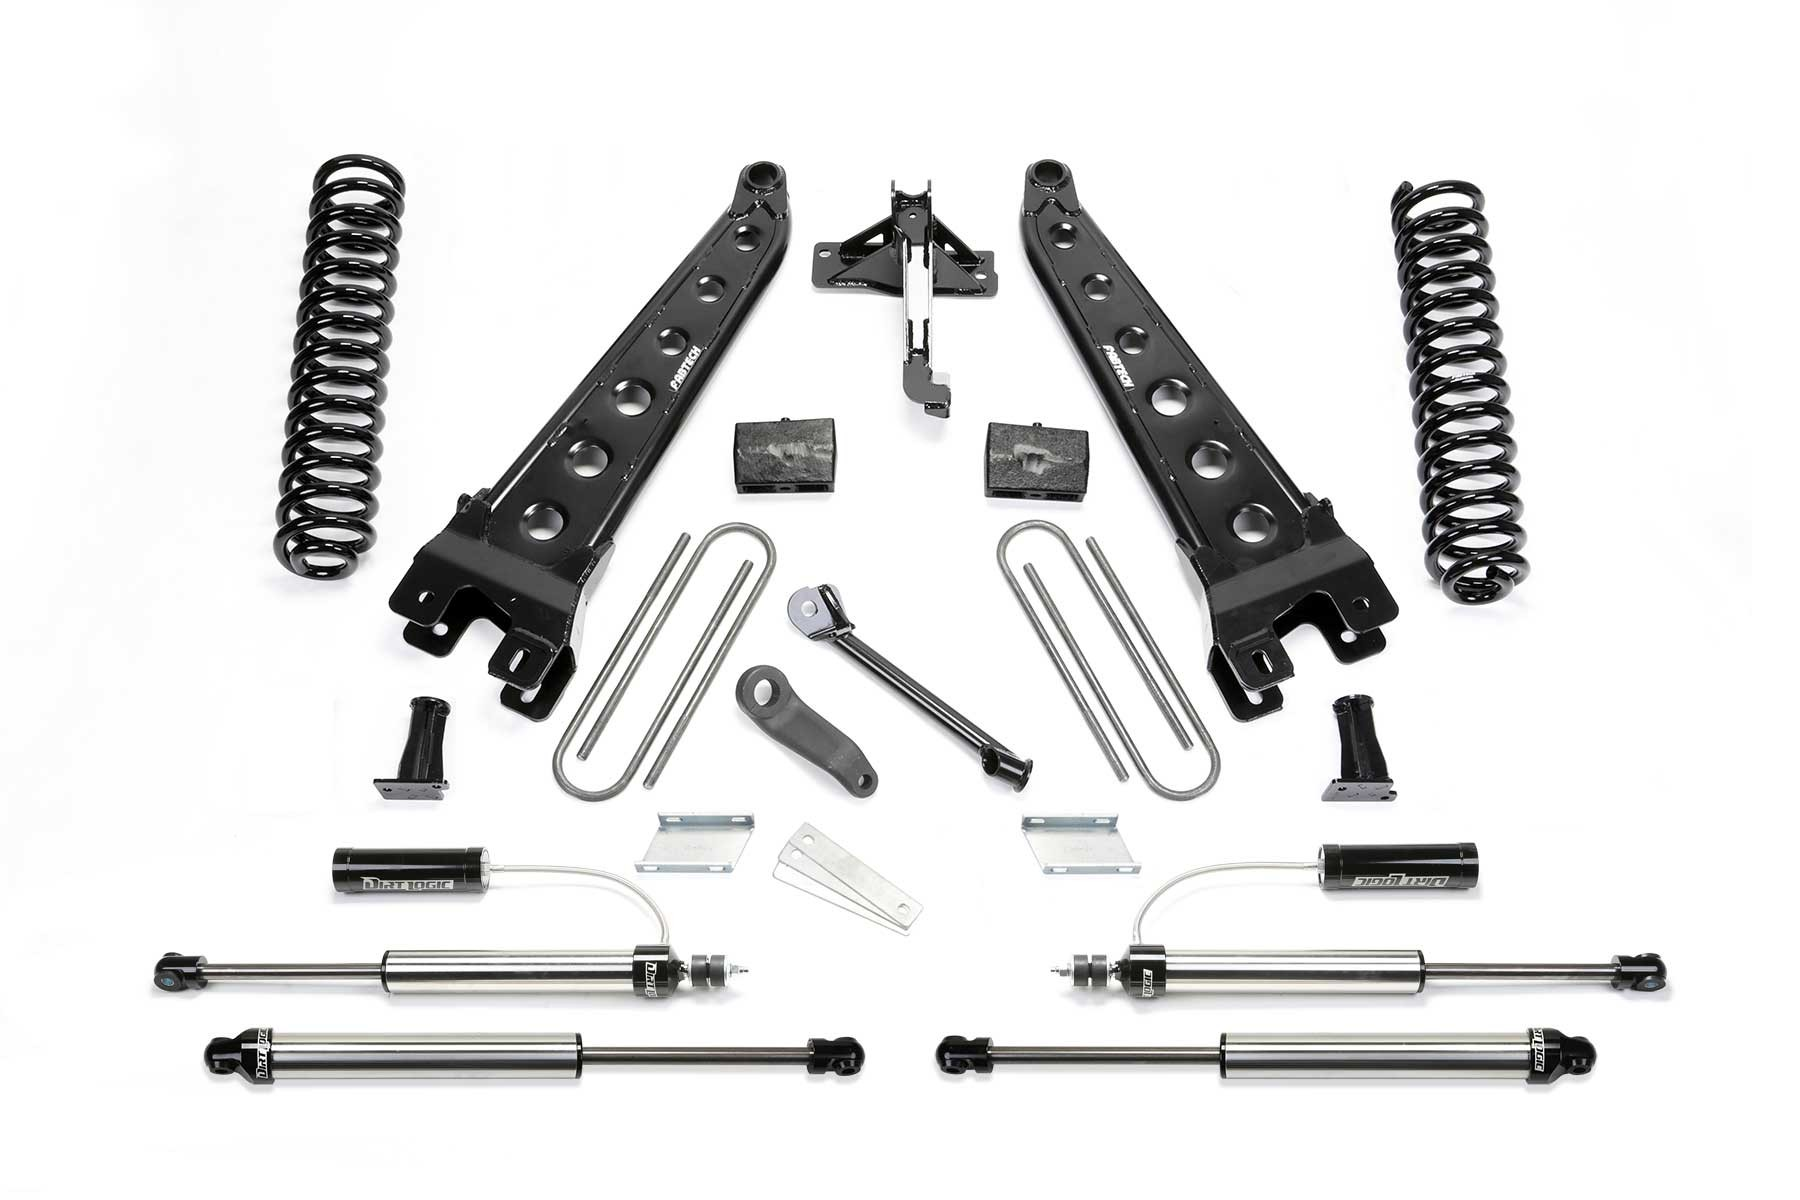 FABTECH  2017-18 FORD F250 / F350 4WD [6.2L GAS}- 4″ RADIUS ARM SYSTEM W/ FRONT DIRT LOGIC 2.25 RESI SHOCKS & REAR DIRT LOGIC SHOCKS